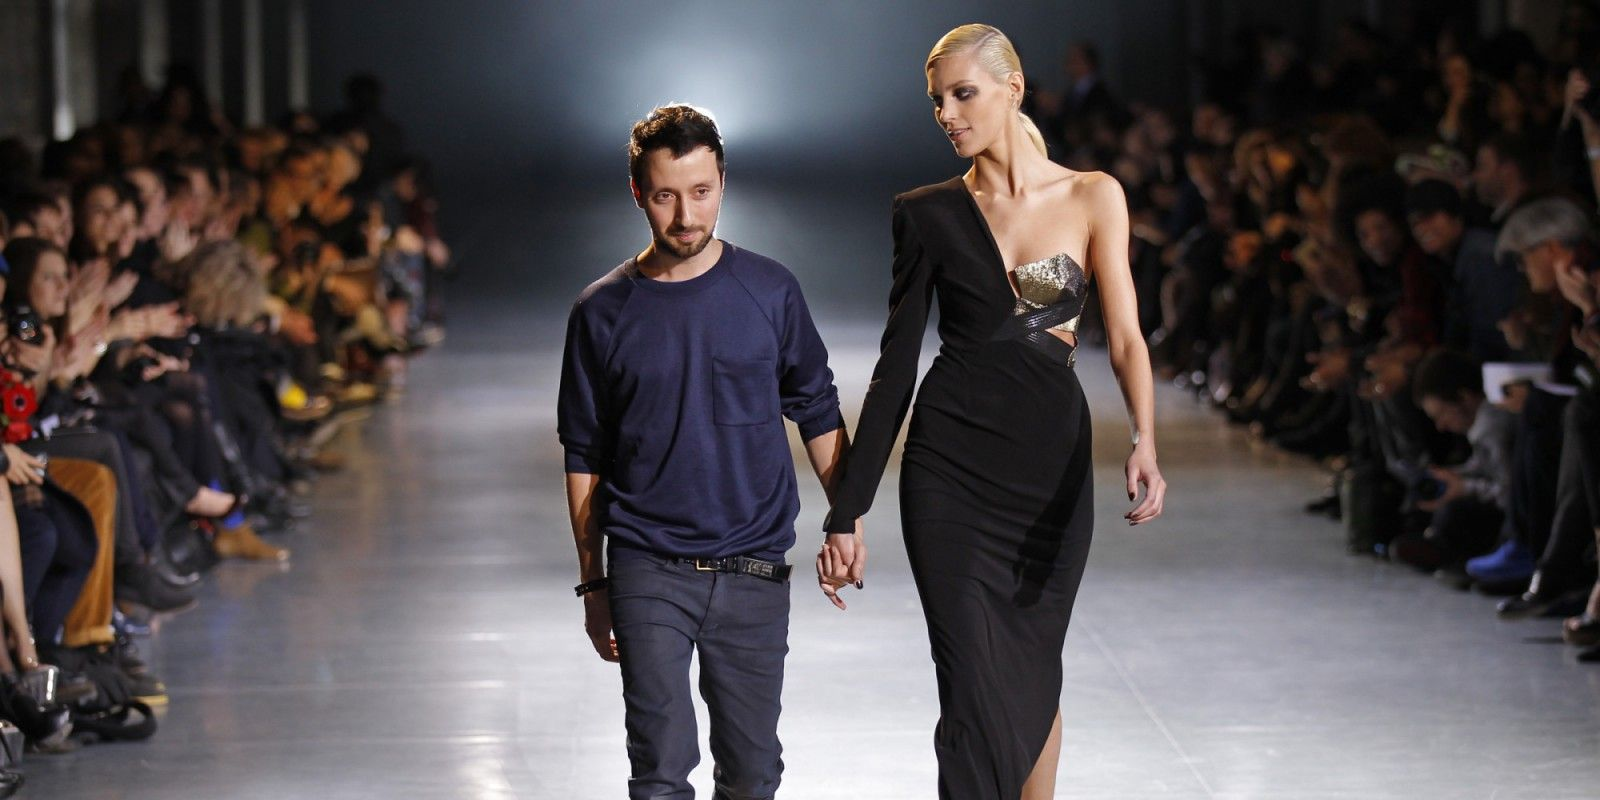 Anthony Vaccarello Is The New Creative Director Of Yves Saint Laurent Effective Immediately In A Join Anthony Vaccarello Yves Saint Laurent Creative Director